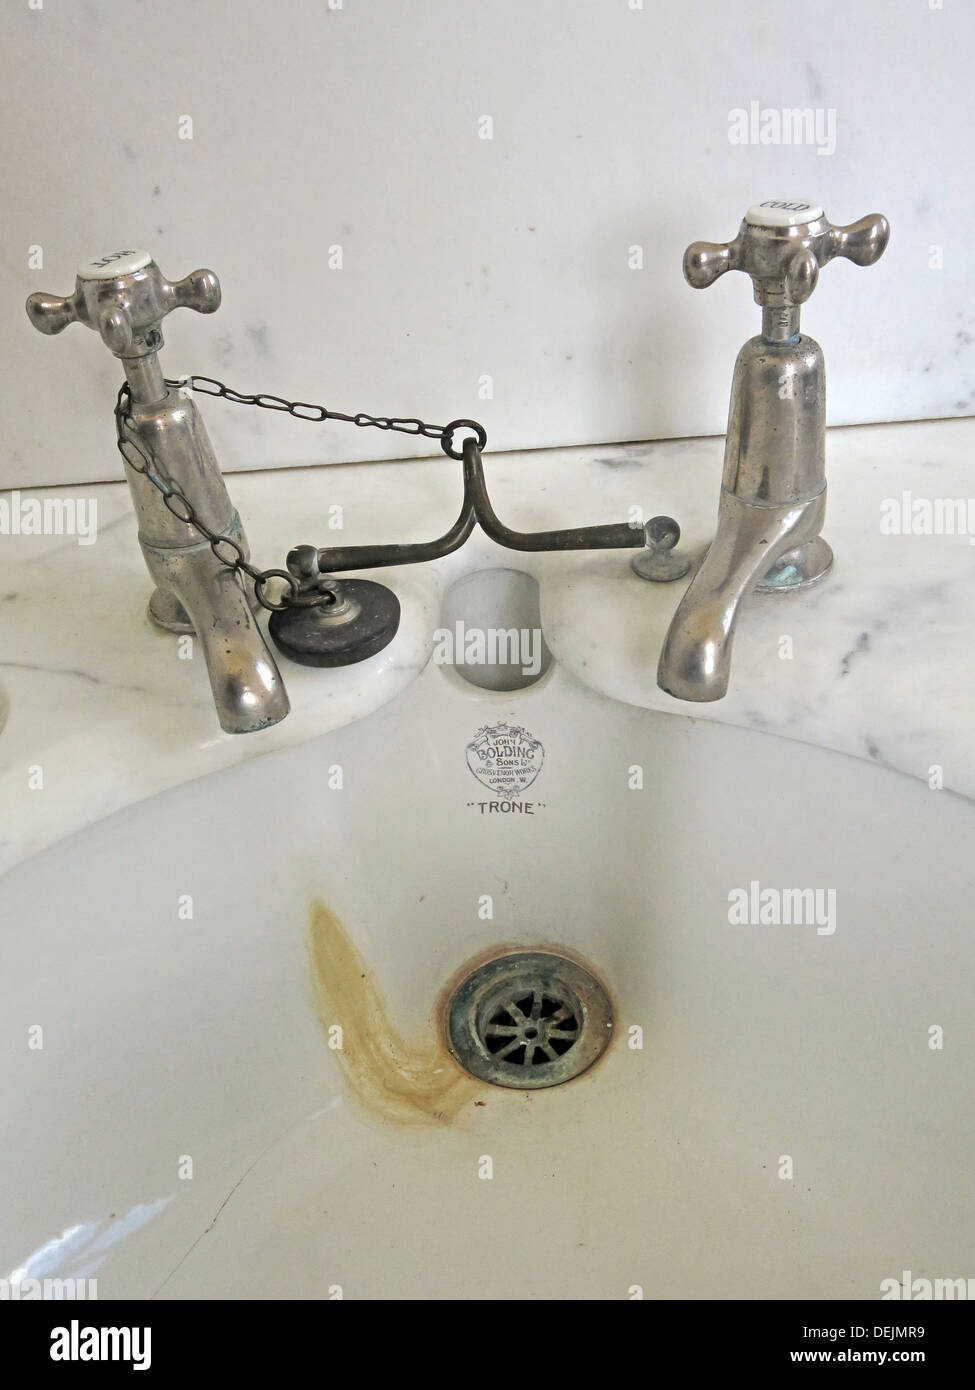 Barrington,Court,Ilminster,Somerset,UK,TA19,0NQ,england,english,property,properties,places,to,visit,for,tourists,tourist,traveller,travelers,travelers,attraction,attractions,garden,interior,baths,tape,old,antique,hot,cold,plug,sink,sinks,white,vitreous,vitrious,enamel,tiles,tile,Gotonysmith,enamal,SW,south,west,nr,near,Yeovil,GB,Great,Britain,Buy Pictures of,Buy Images Of